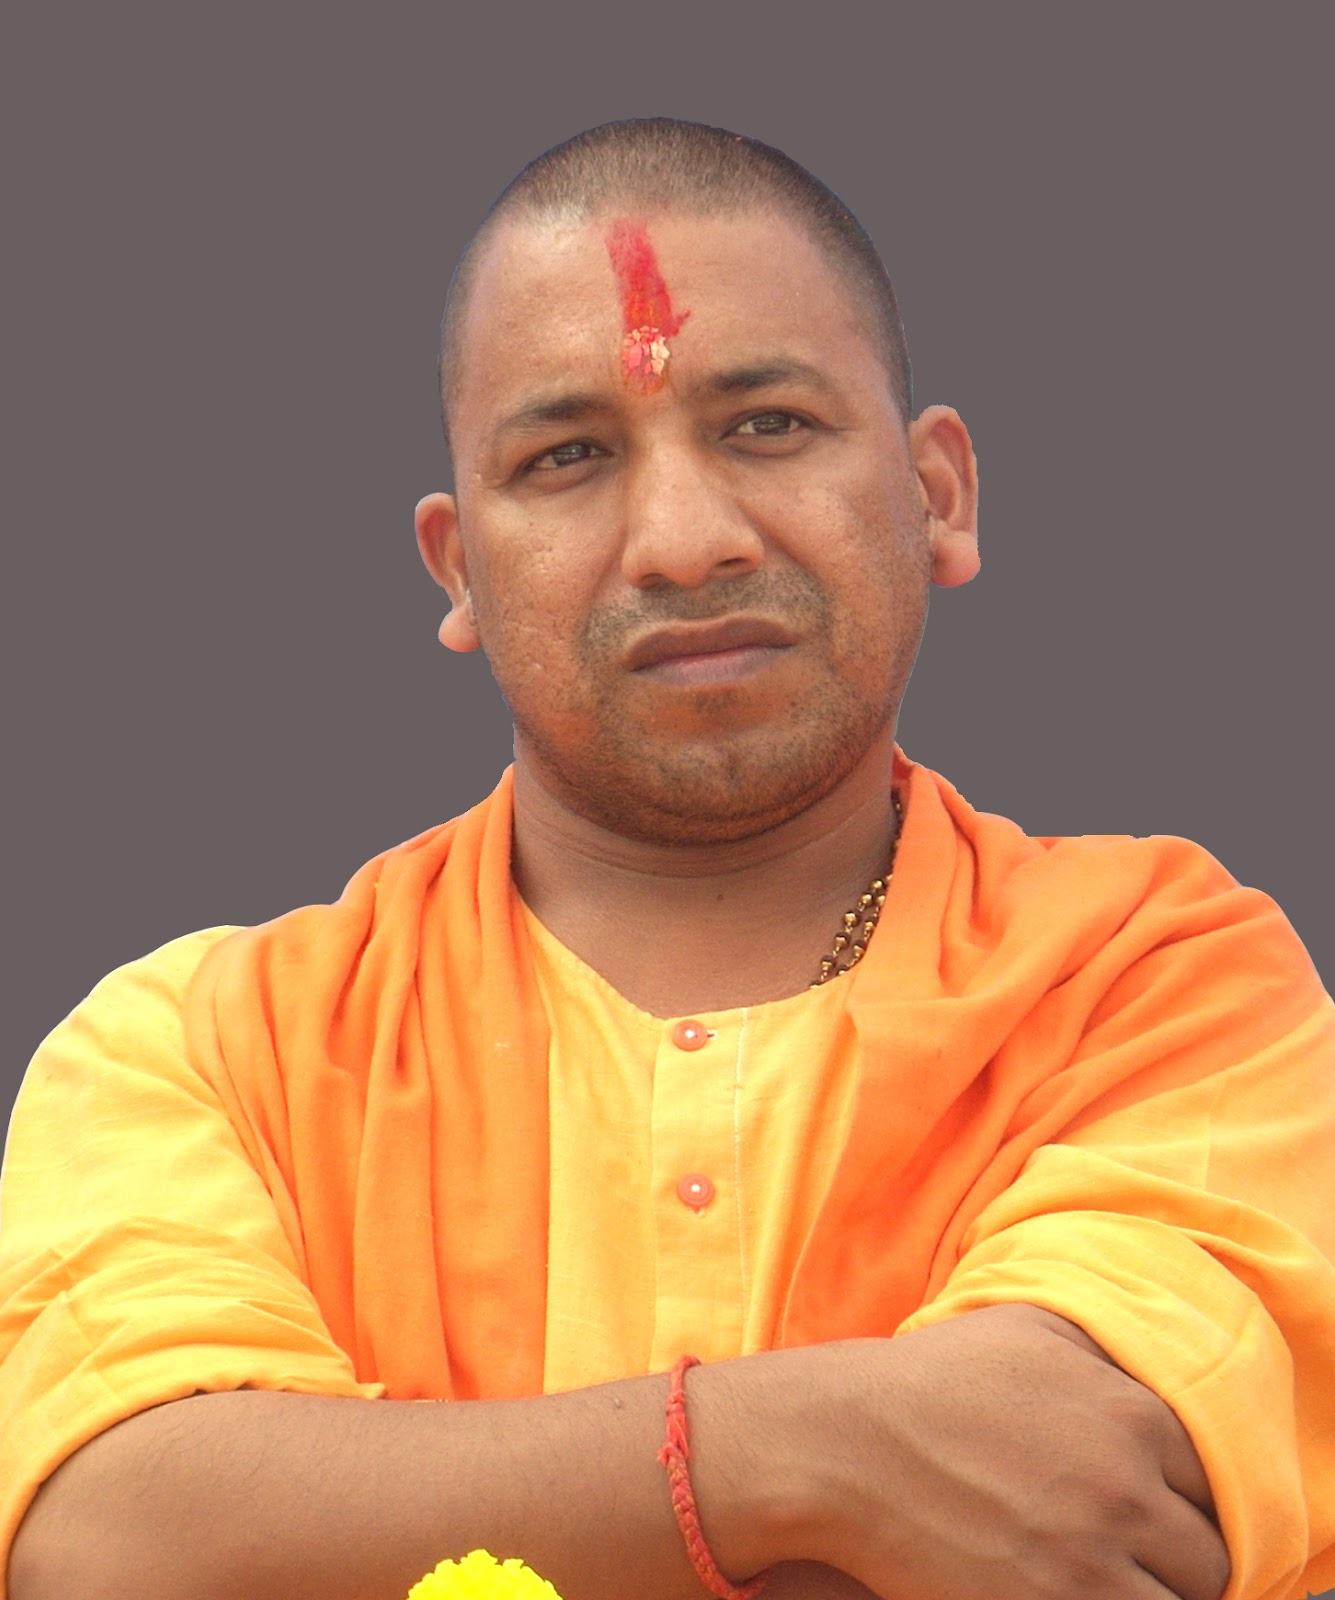 Hd wallpaper yogi adityanath -